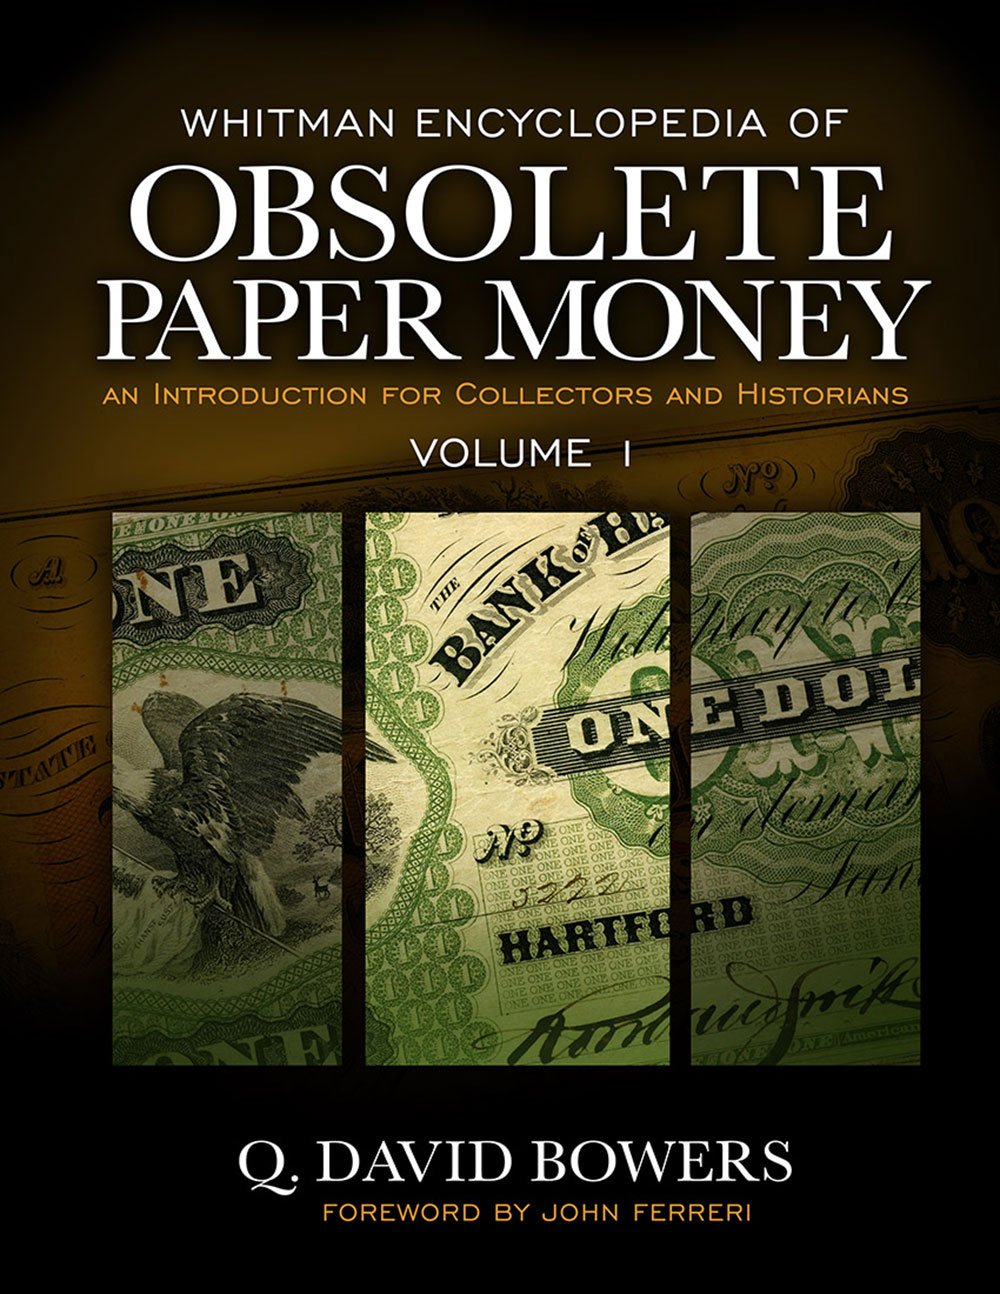 Obsolete Paper Money Issued By Banks in the United States Vol 1 by Bowers